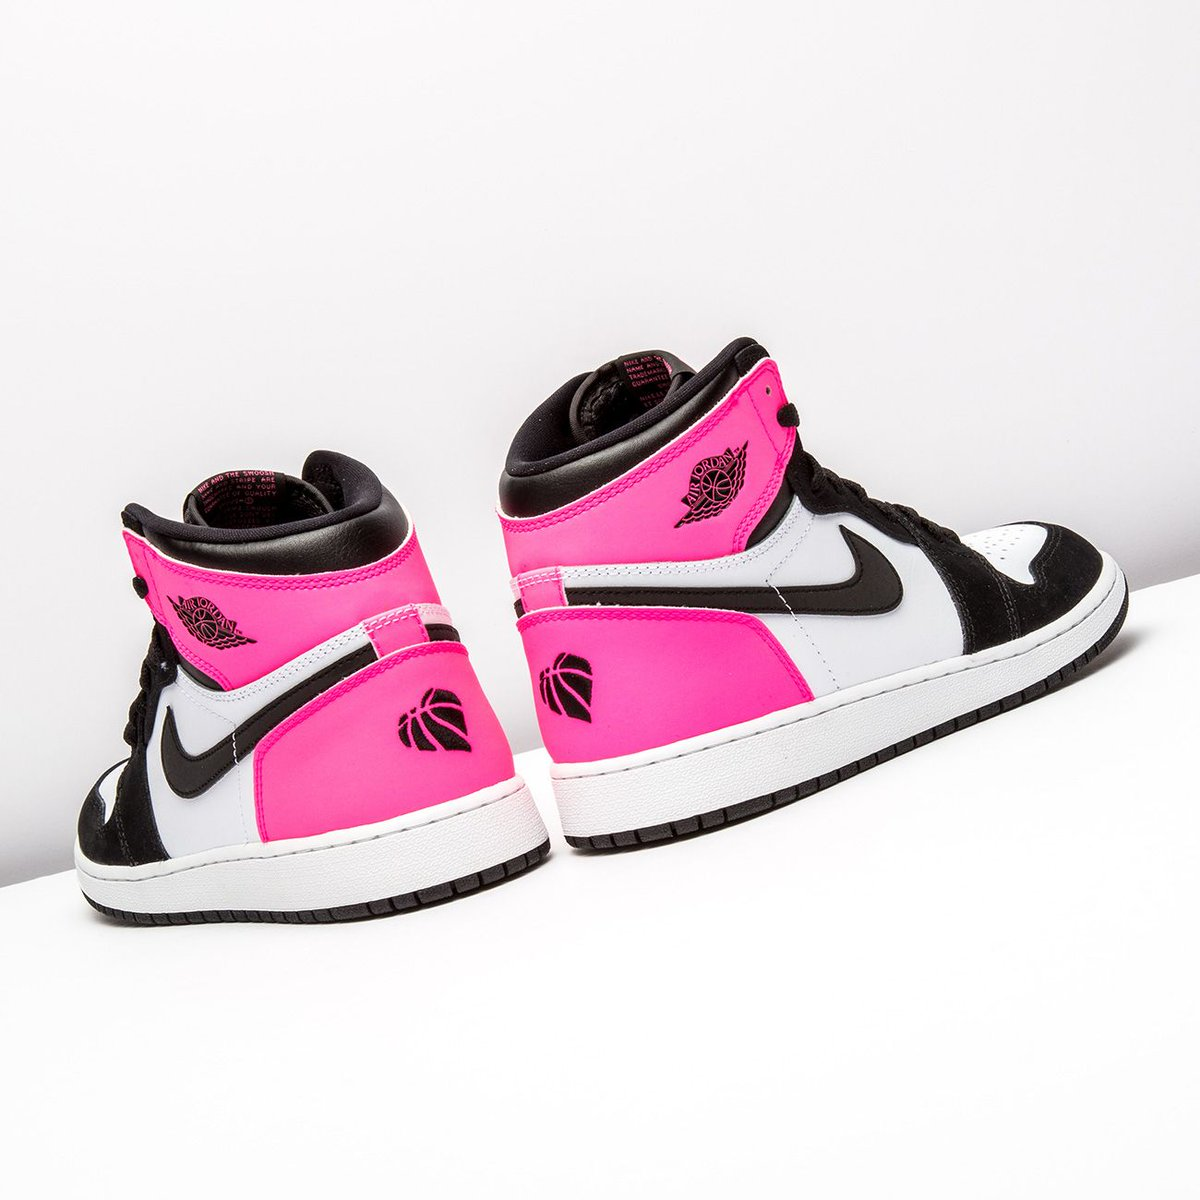 """e9bcf600293fdb ... the Air Jordan 1 """"Valentine s Day"""" is the perfect way to show the Air  Jordan connoisseur in your life how much you care. http   bit.ly 2WWpdxX ..."""